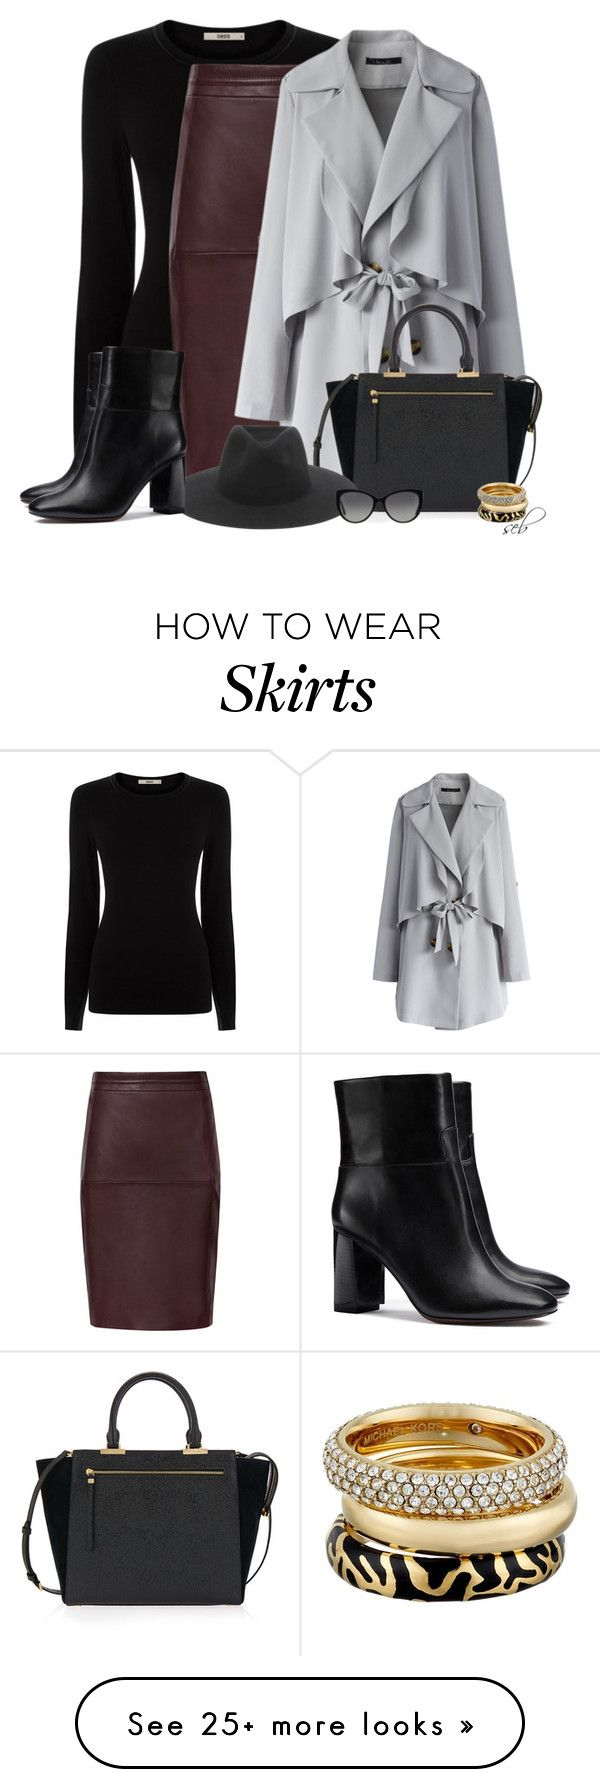 """""""Leather Skirt for Fall"""" by coombsie24 on Polyvore featuring Oasis, Chicwish, Henri Bendel, rag & bone, Michael Kors and Tory Burch"""